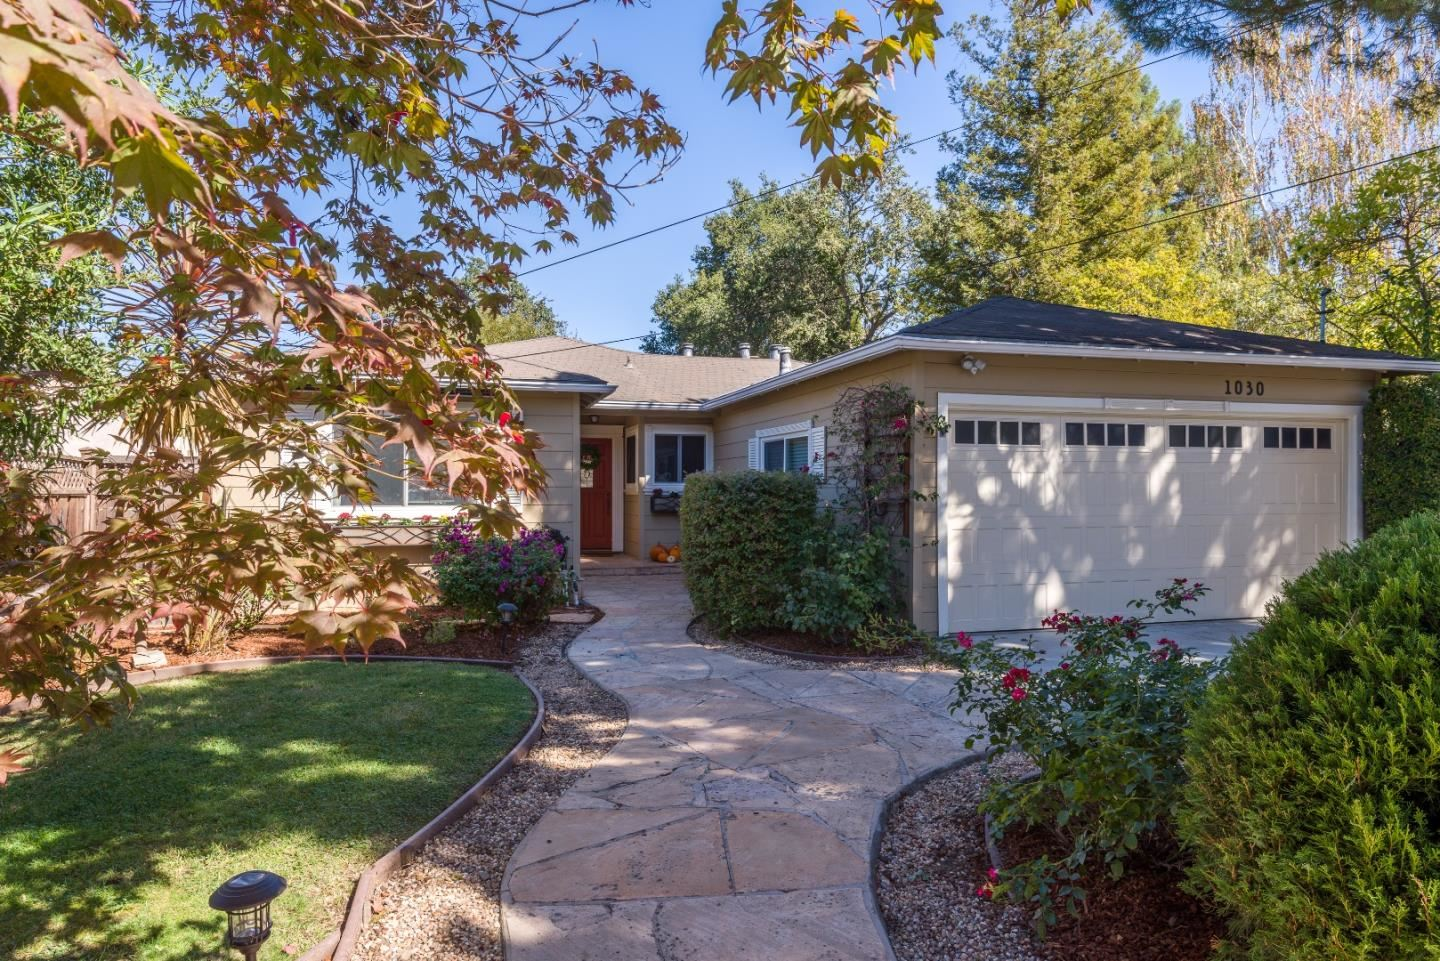 Photo for 1030 Lucky AVE, MENLO PARK, CA 94025 (MLS # ML81815871)